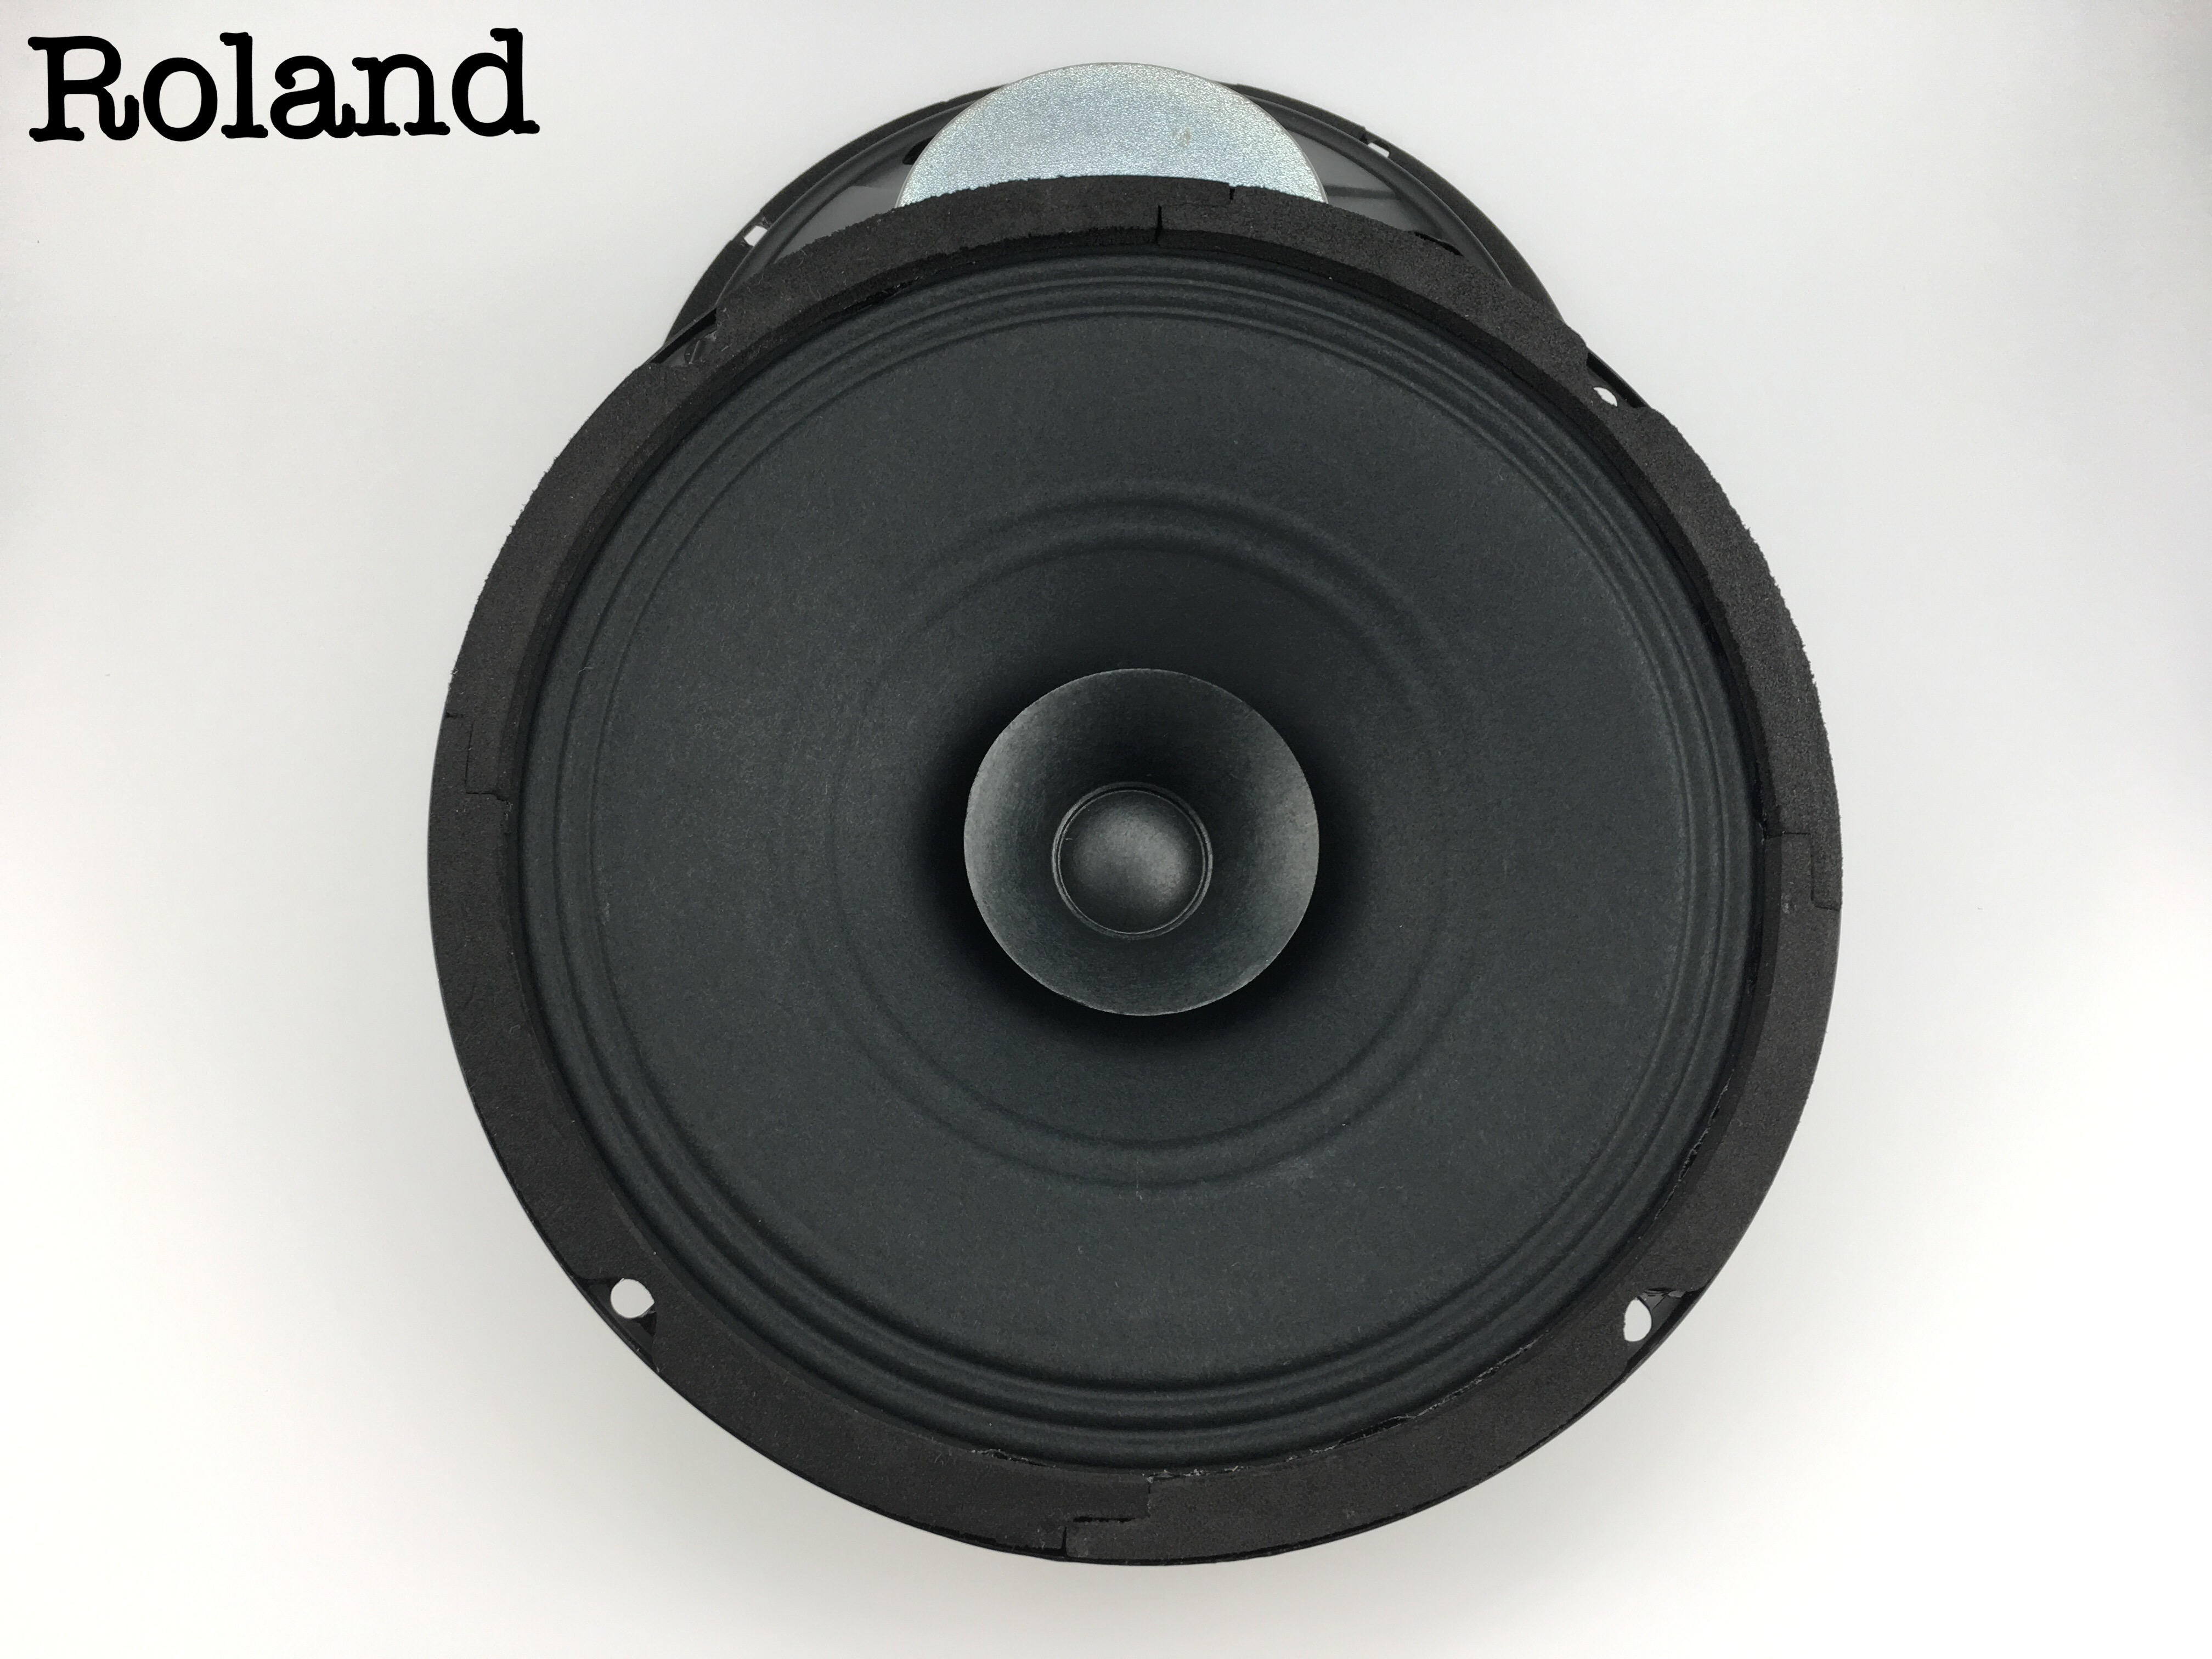 Disassemble the original Roland 8 inches full frequency voice horn loudspeaker electric guitar, guitar and other instruments voice horn